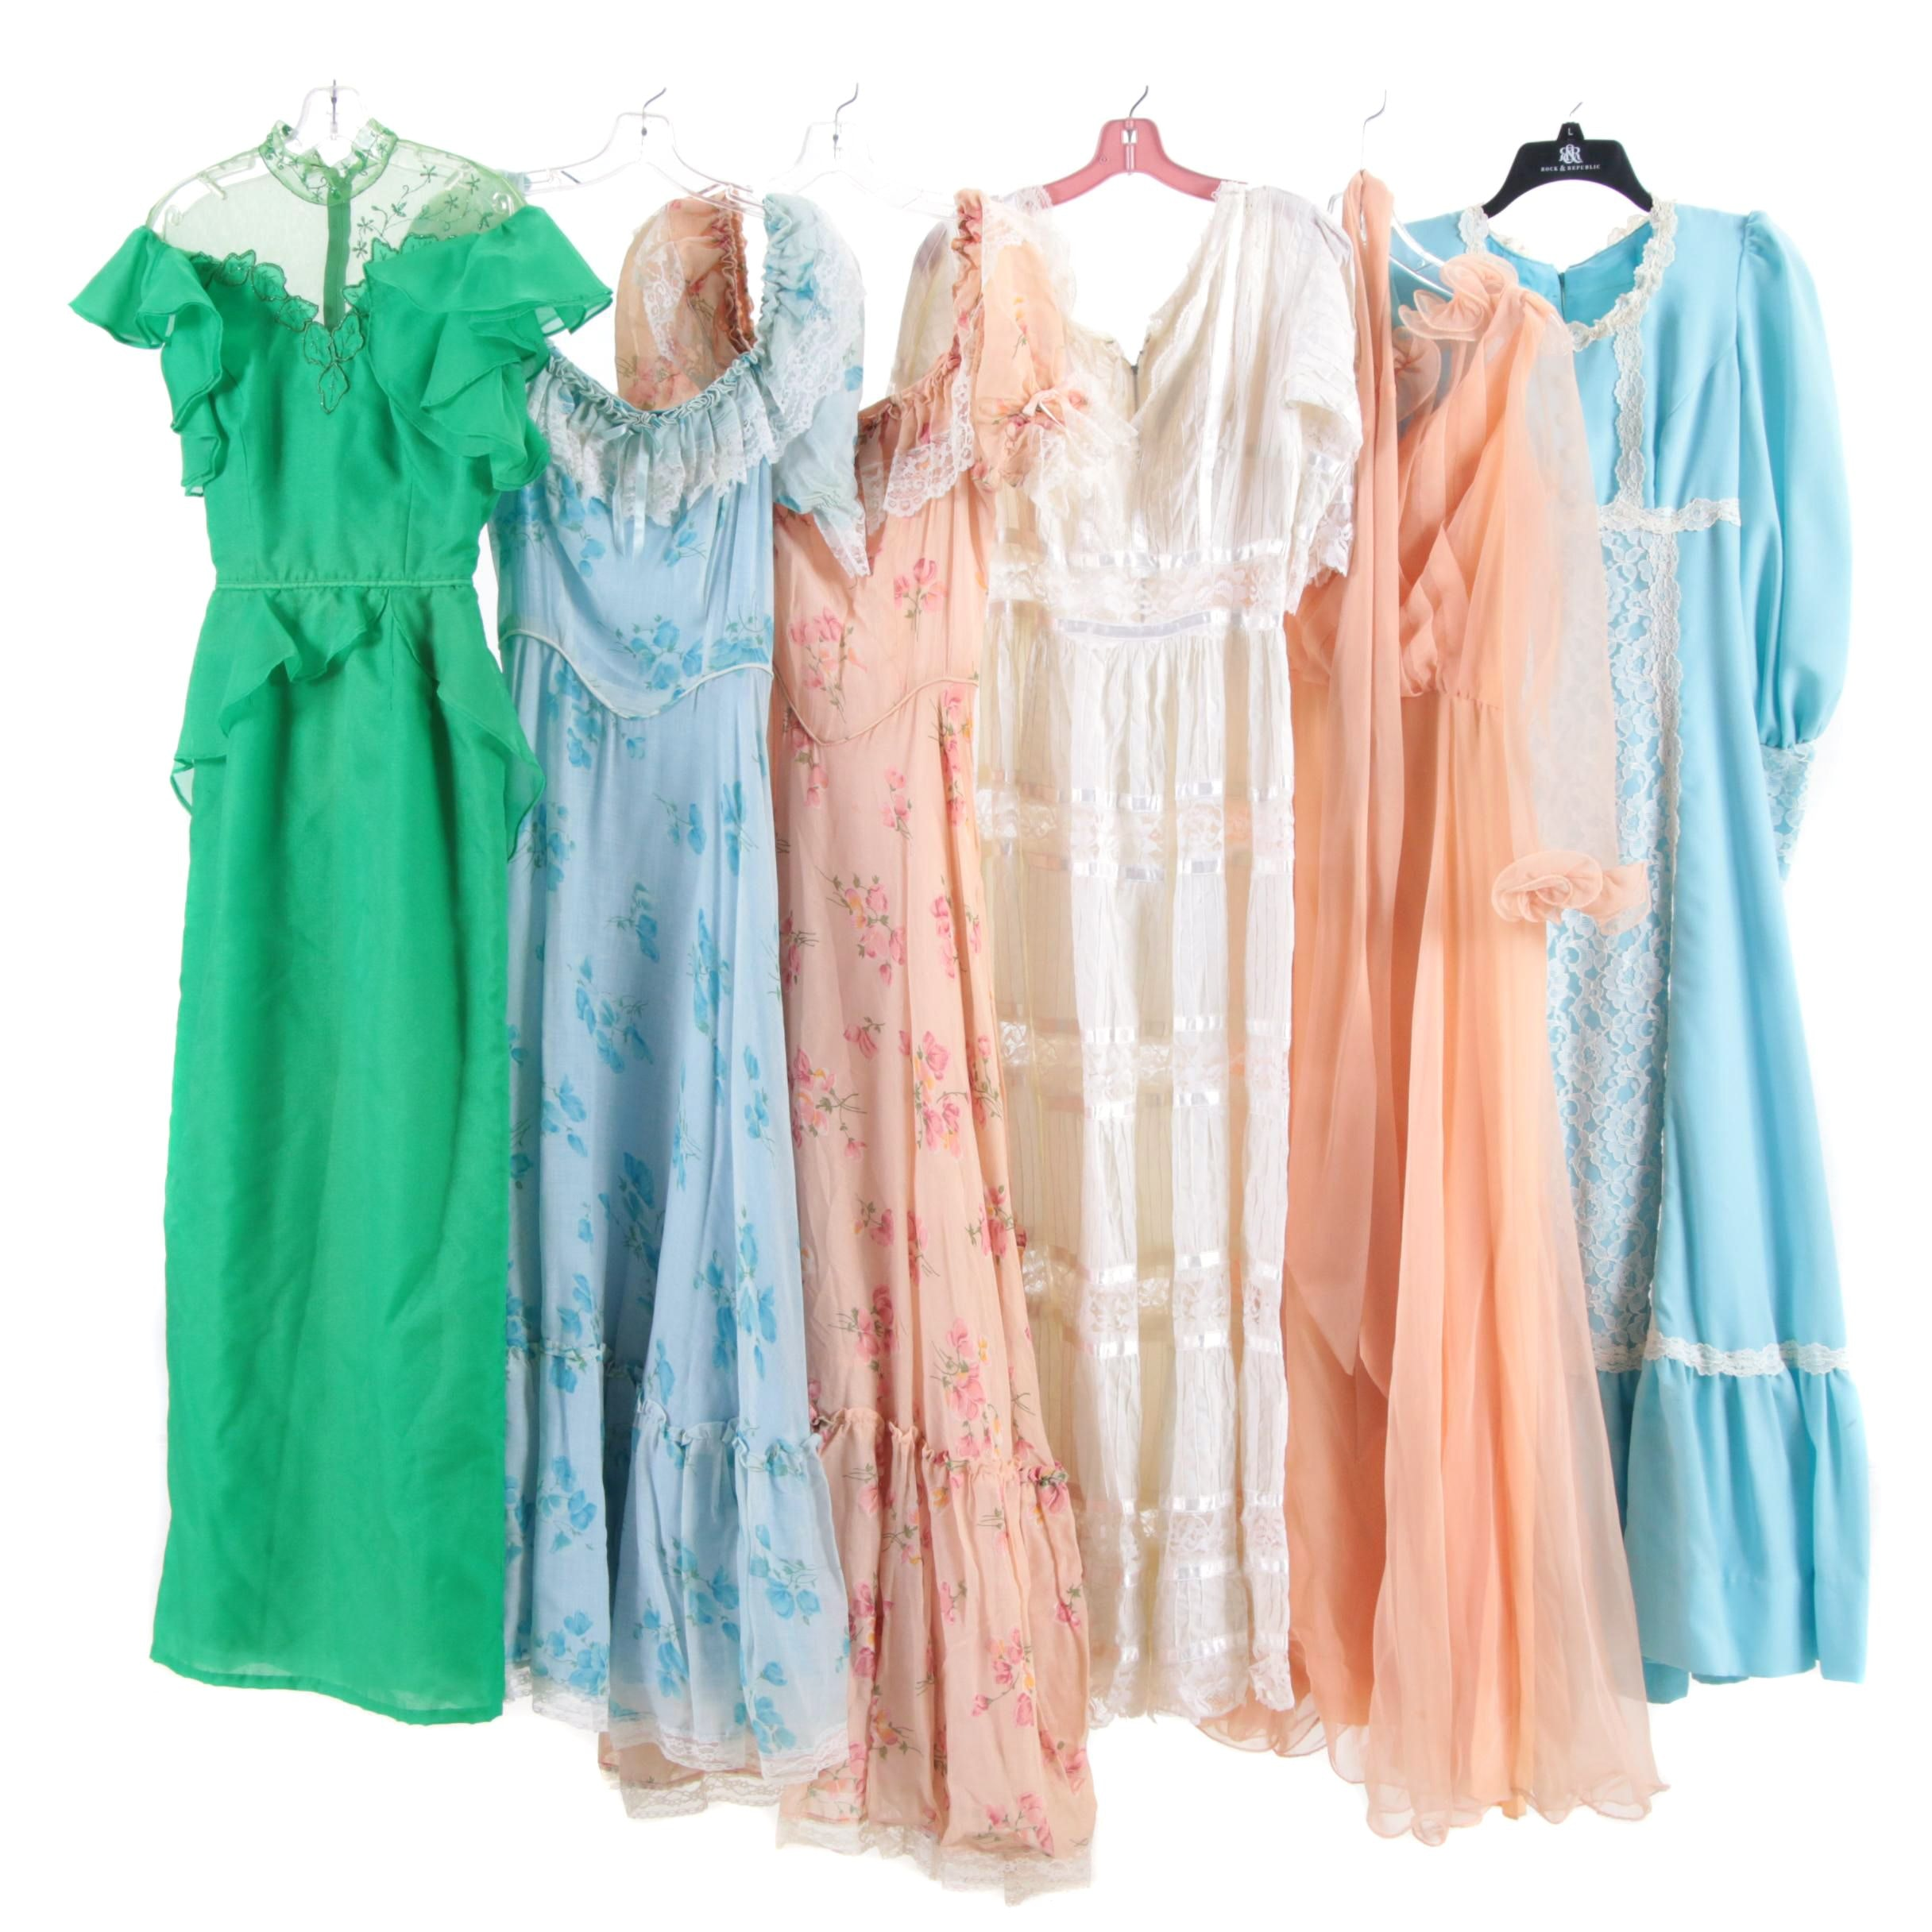 Dresses Including Miss Elliette California, 1970s Vintage